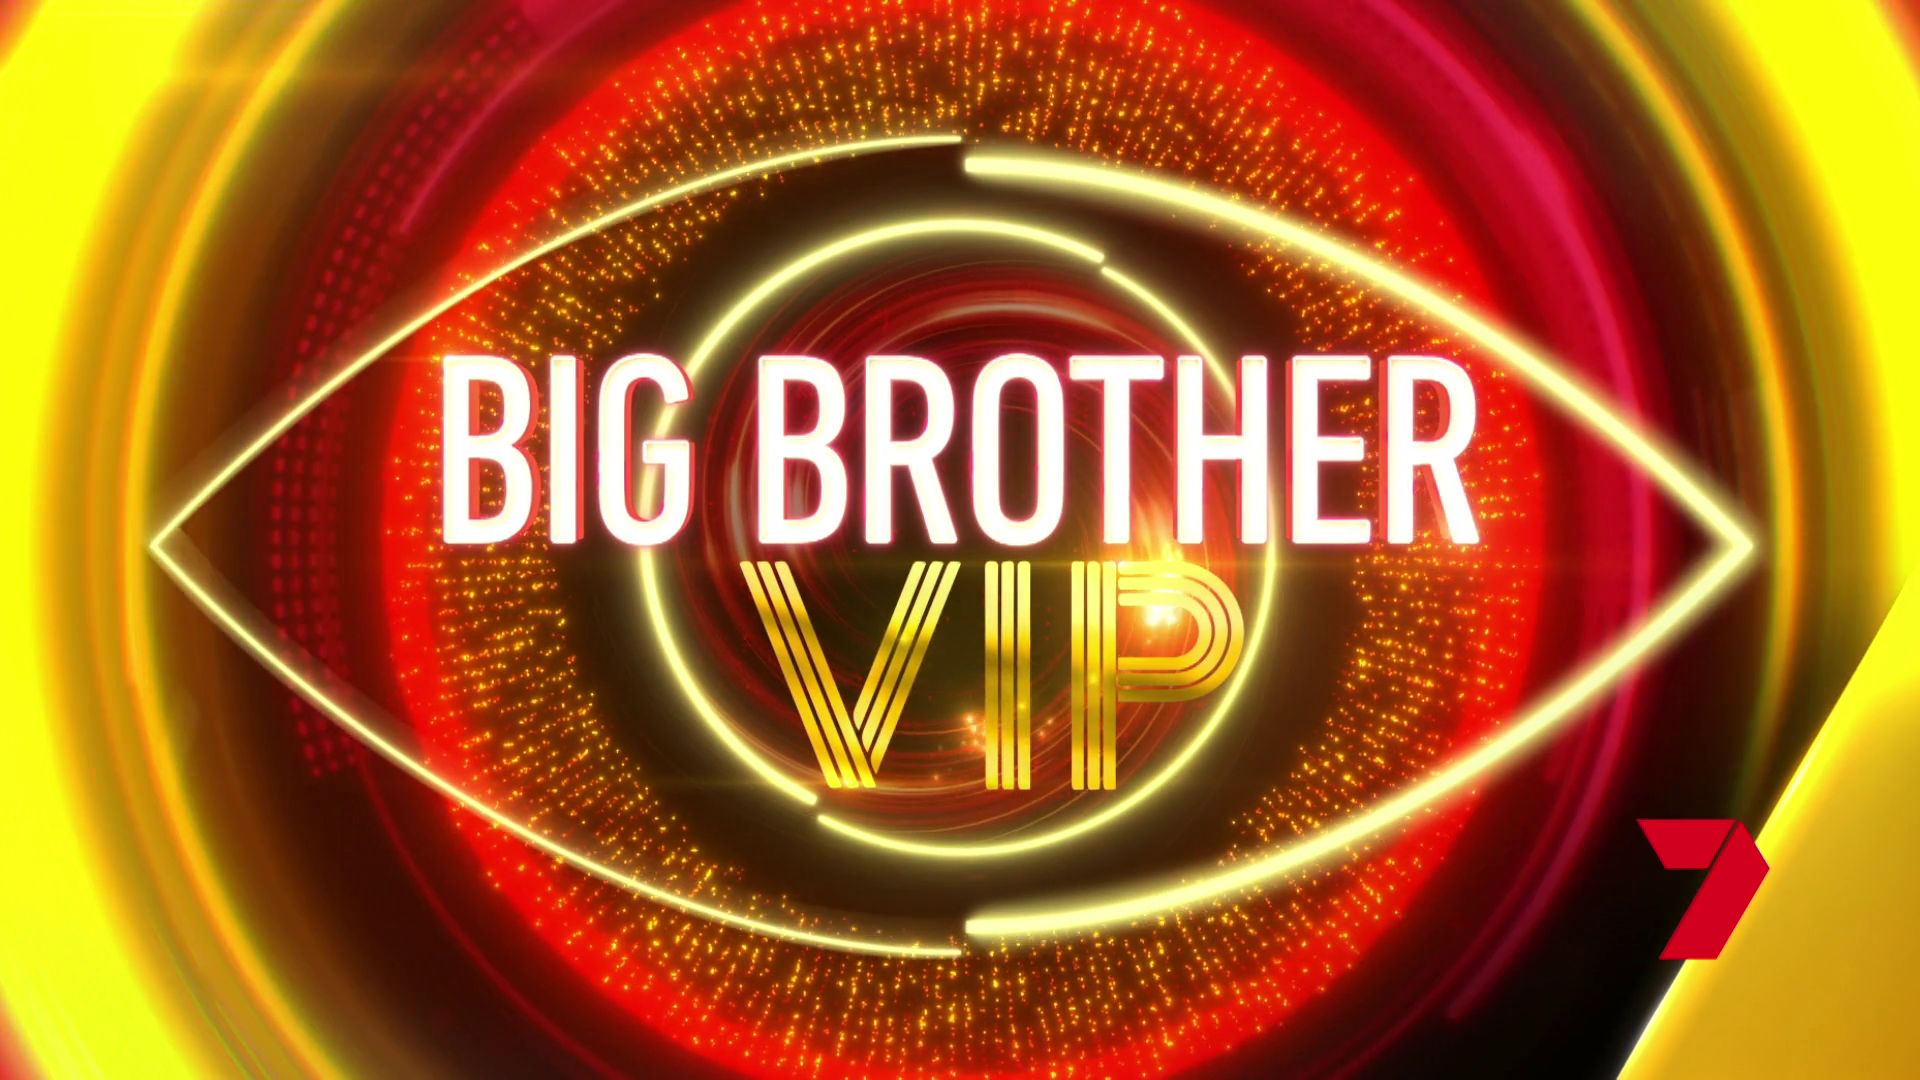 Big Brother VIP rolls out the red carpet